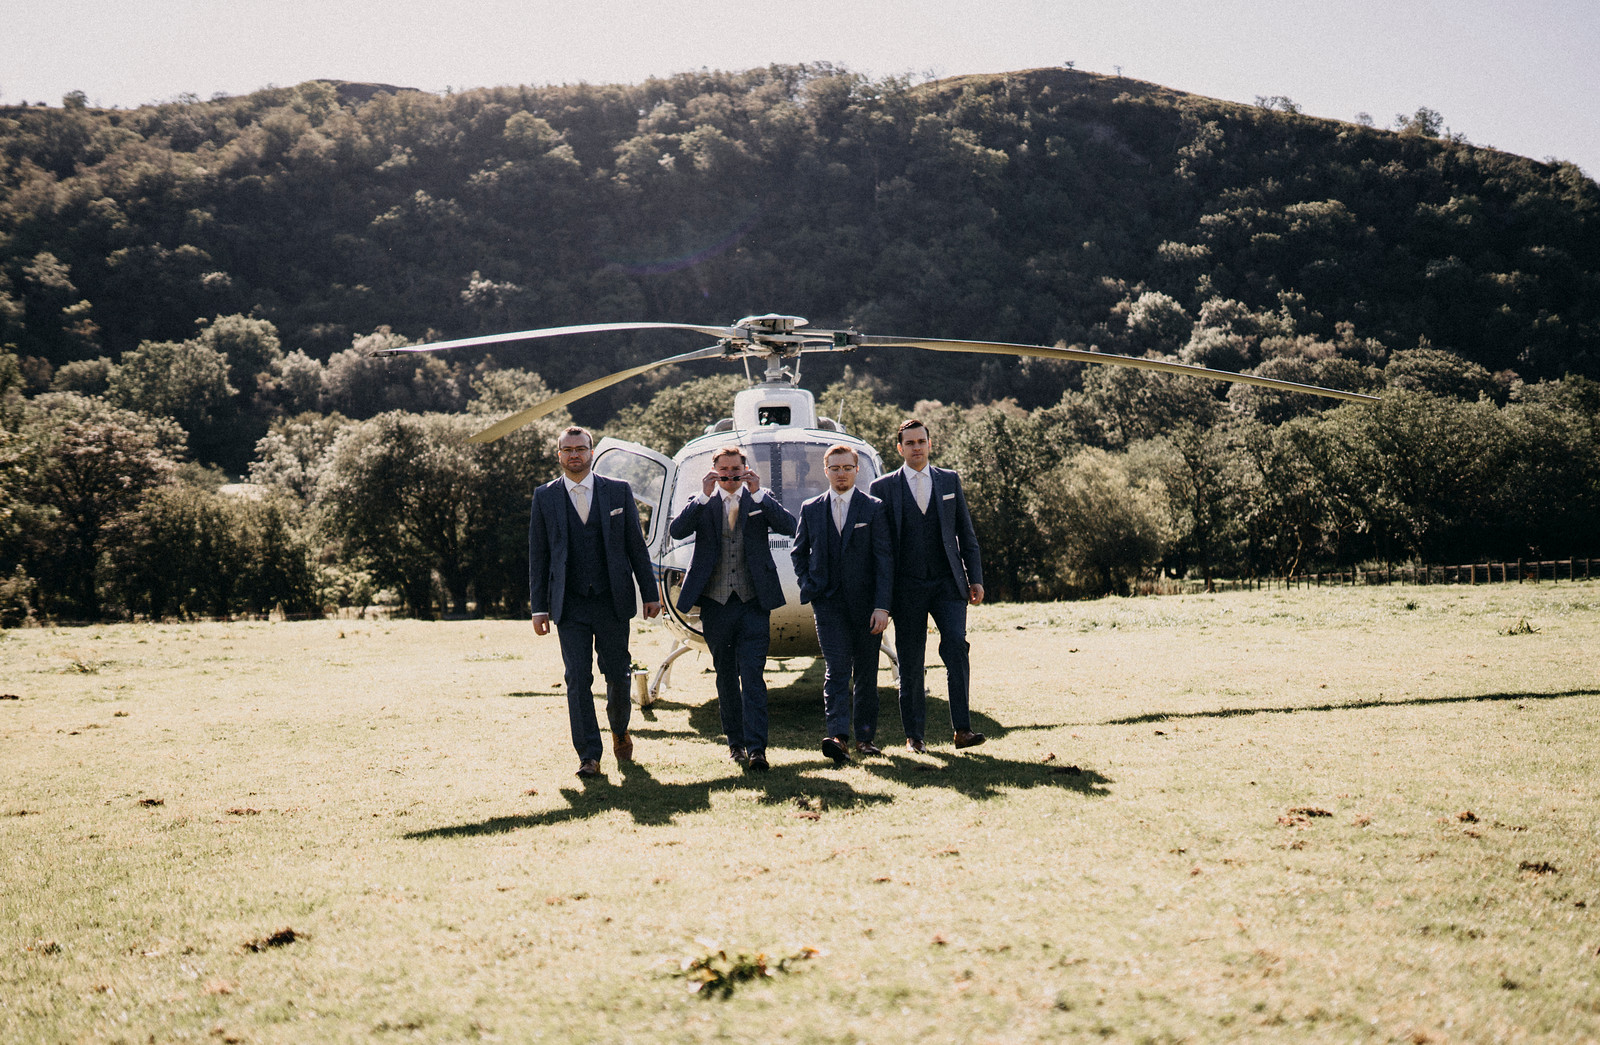 Groomsmen walk away from a helicopter